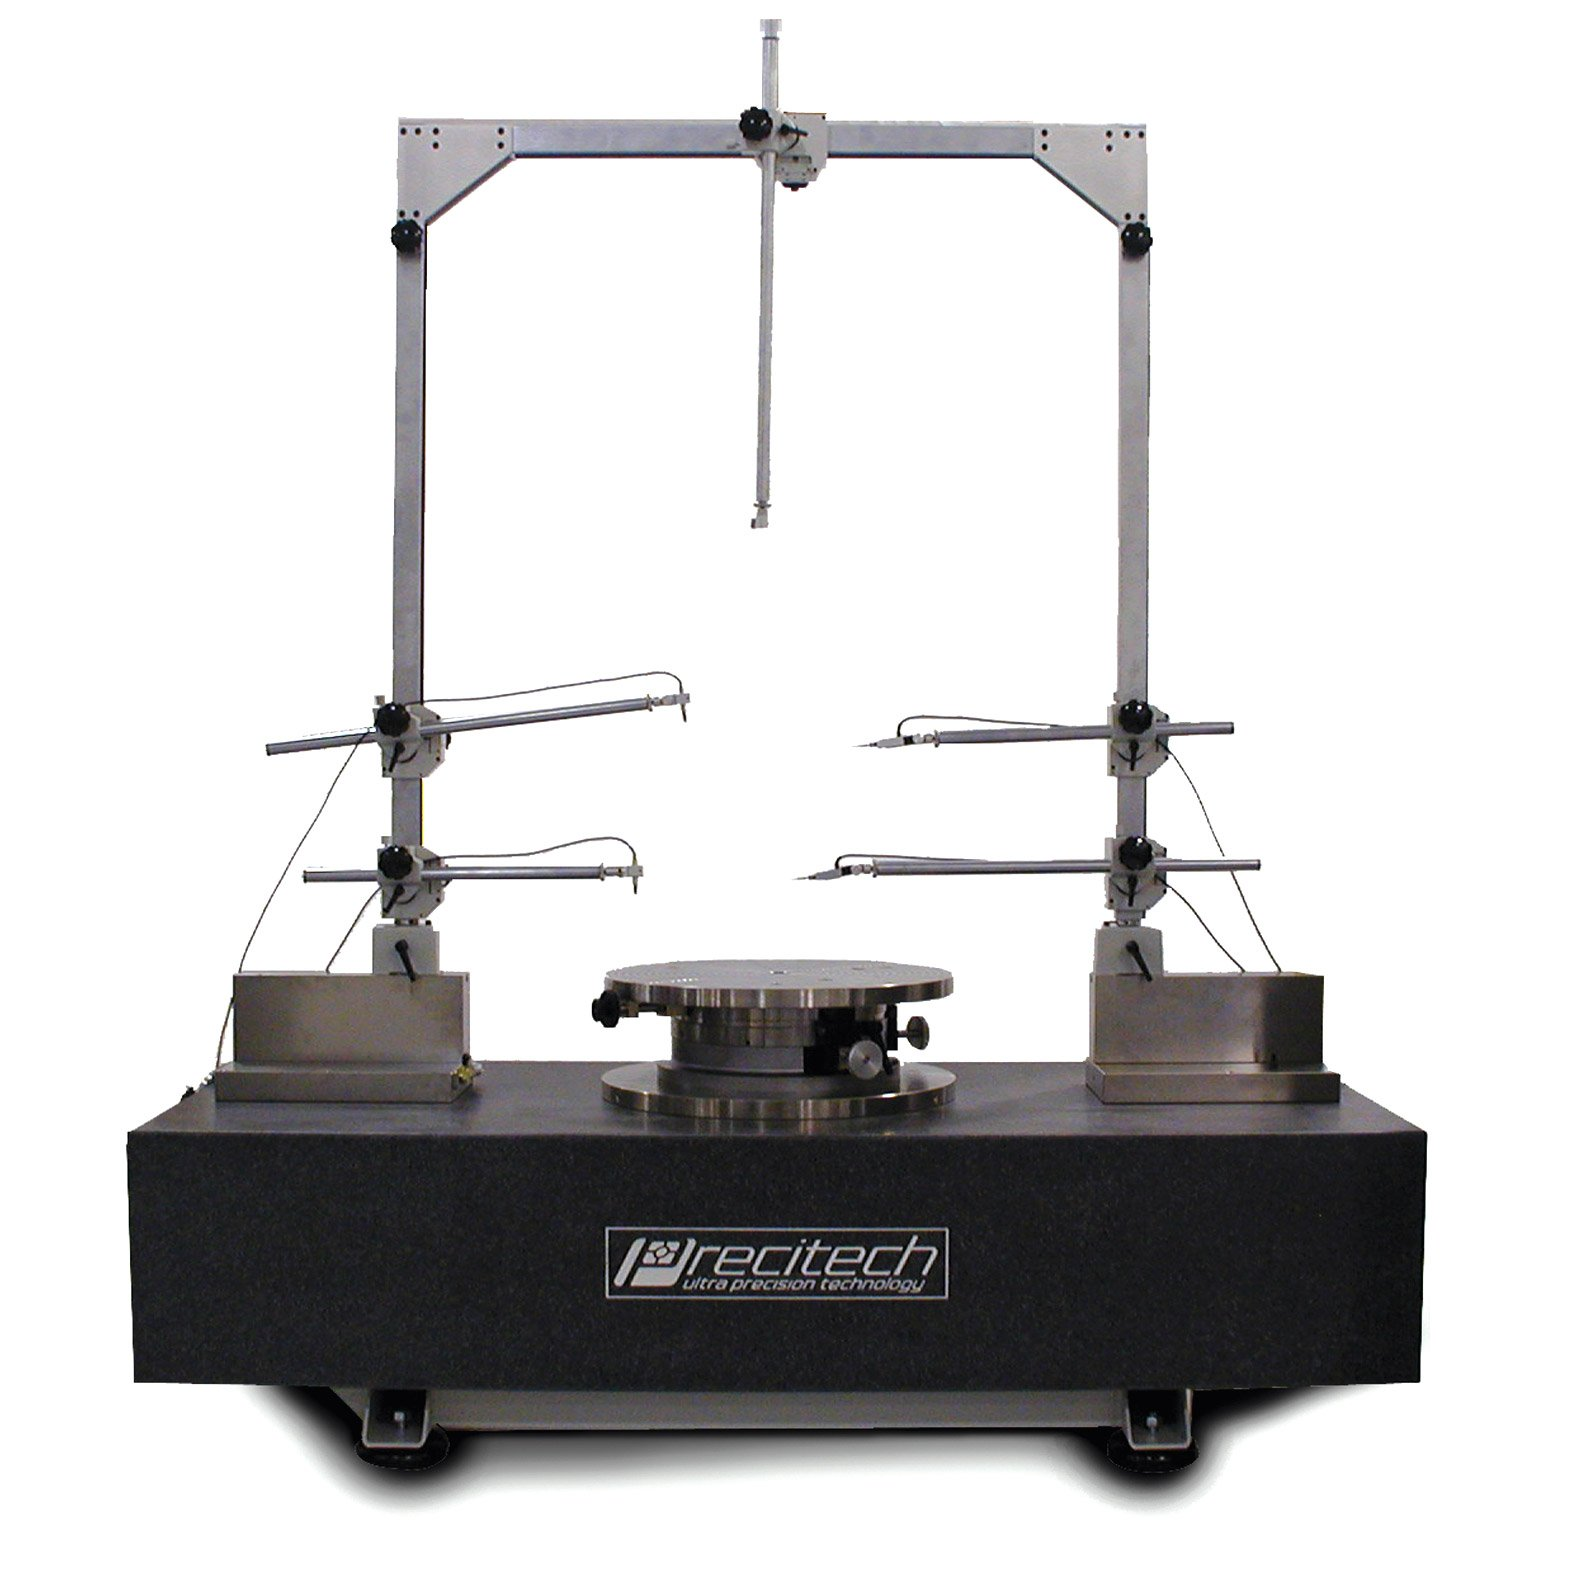 Aerospect SPS 2500LC jet engine alignment system